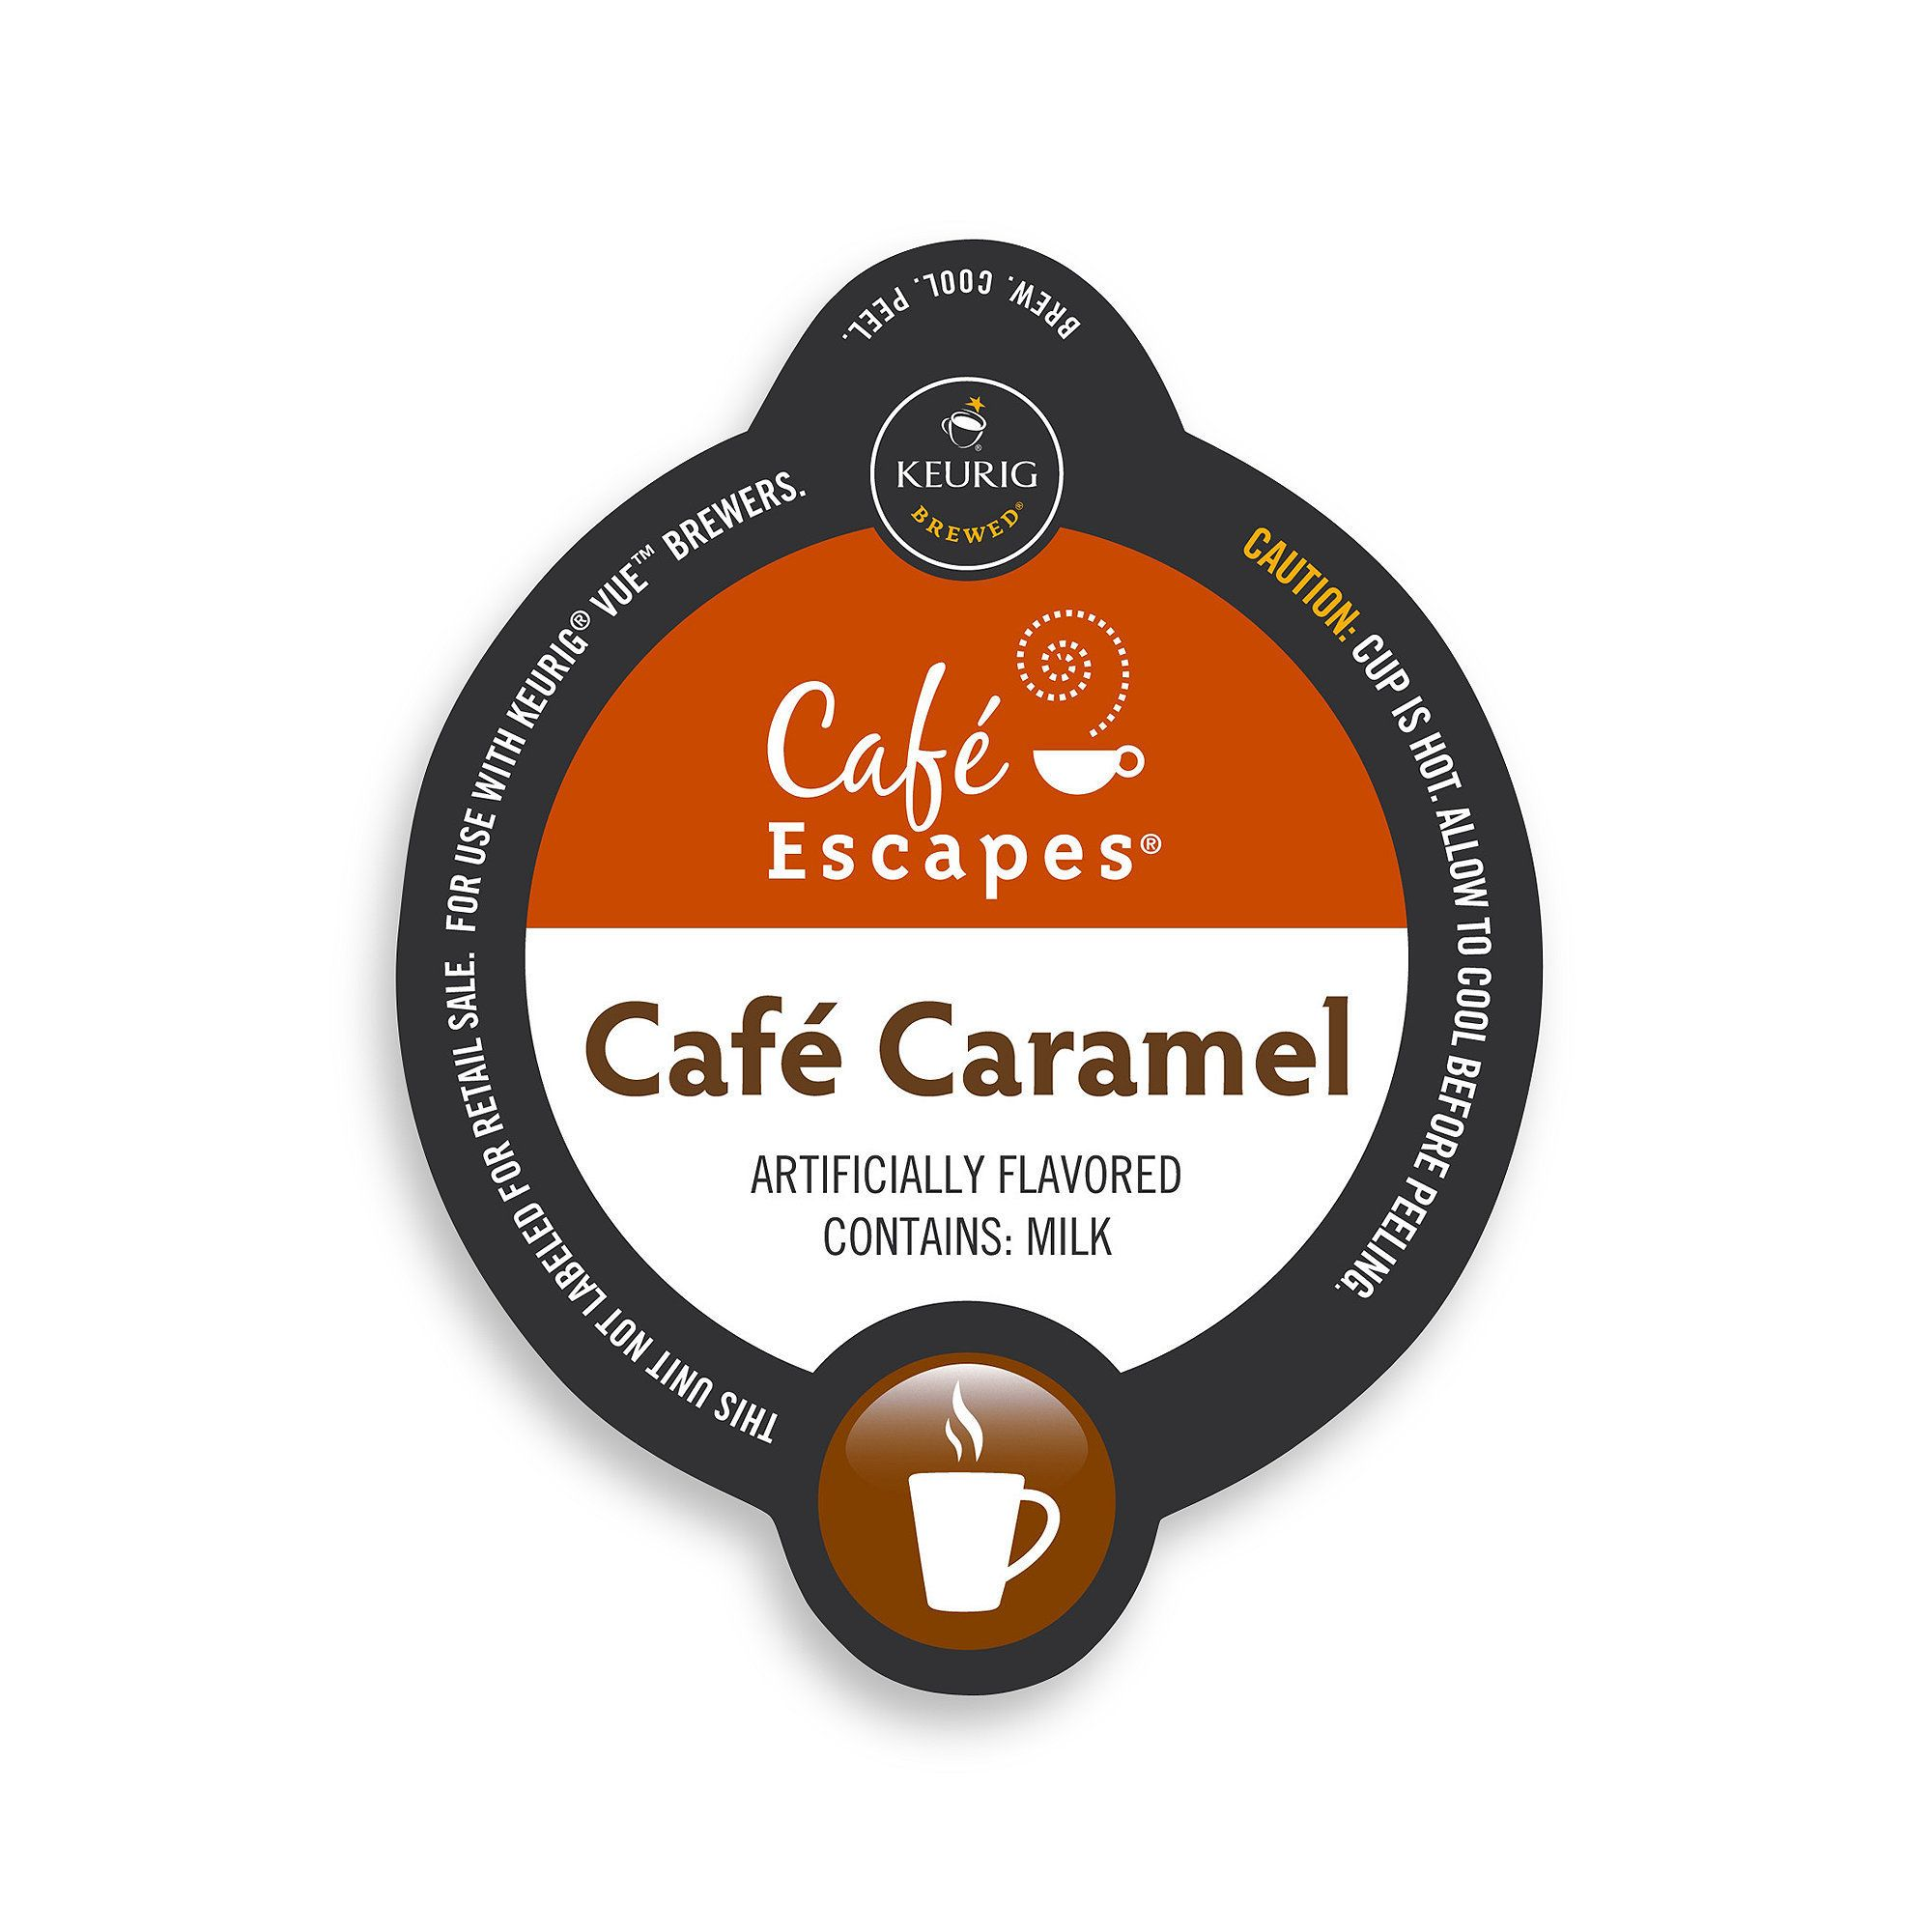 Cafe Escapes Cafe Caramel Specialty, Vue Cup Portion Pack